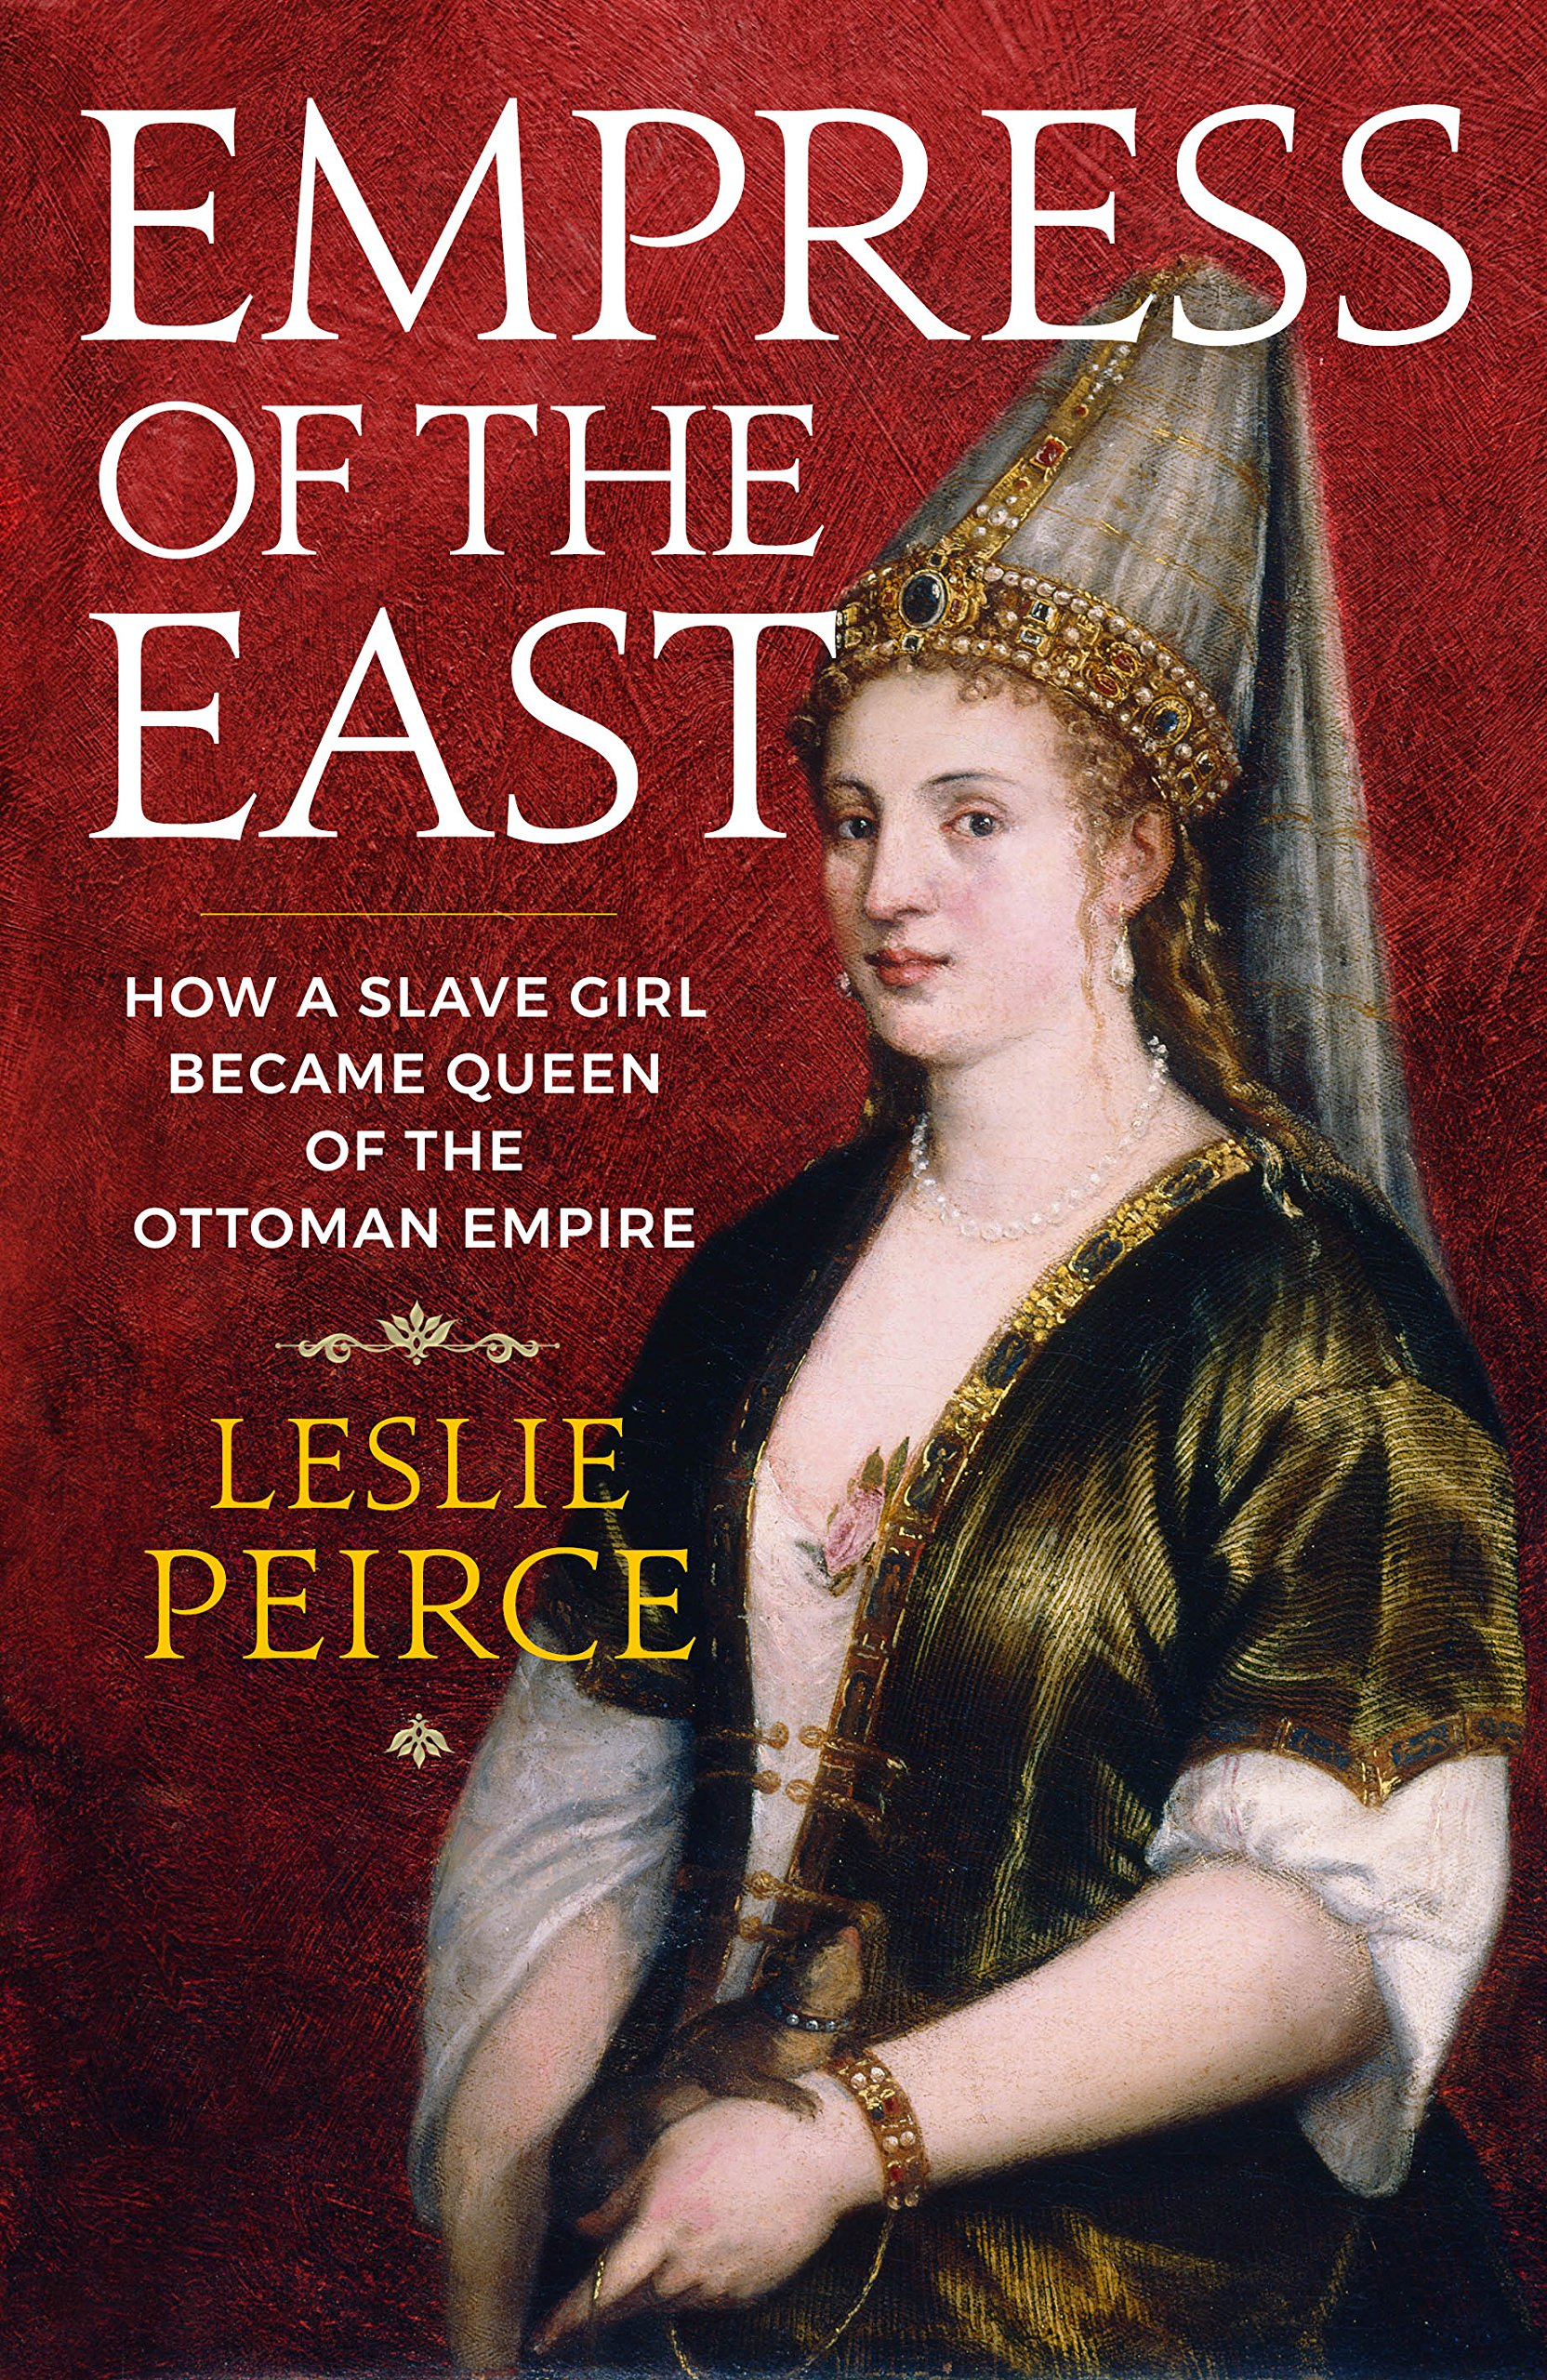 Empress of the East: How a Slave Girl Became Queen of the Ottoman Empire:  Amazon.co.uk: Leslie Peirce: 9781785783494: Books